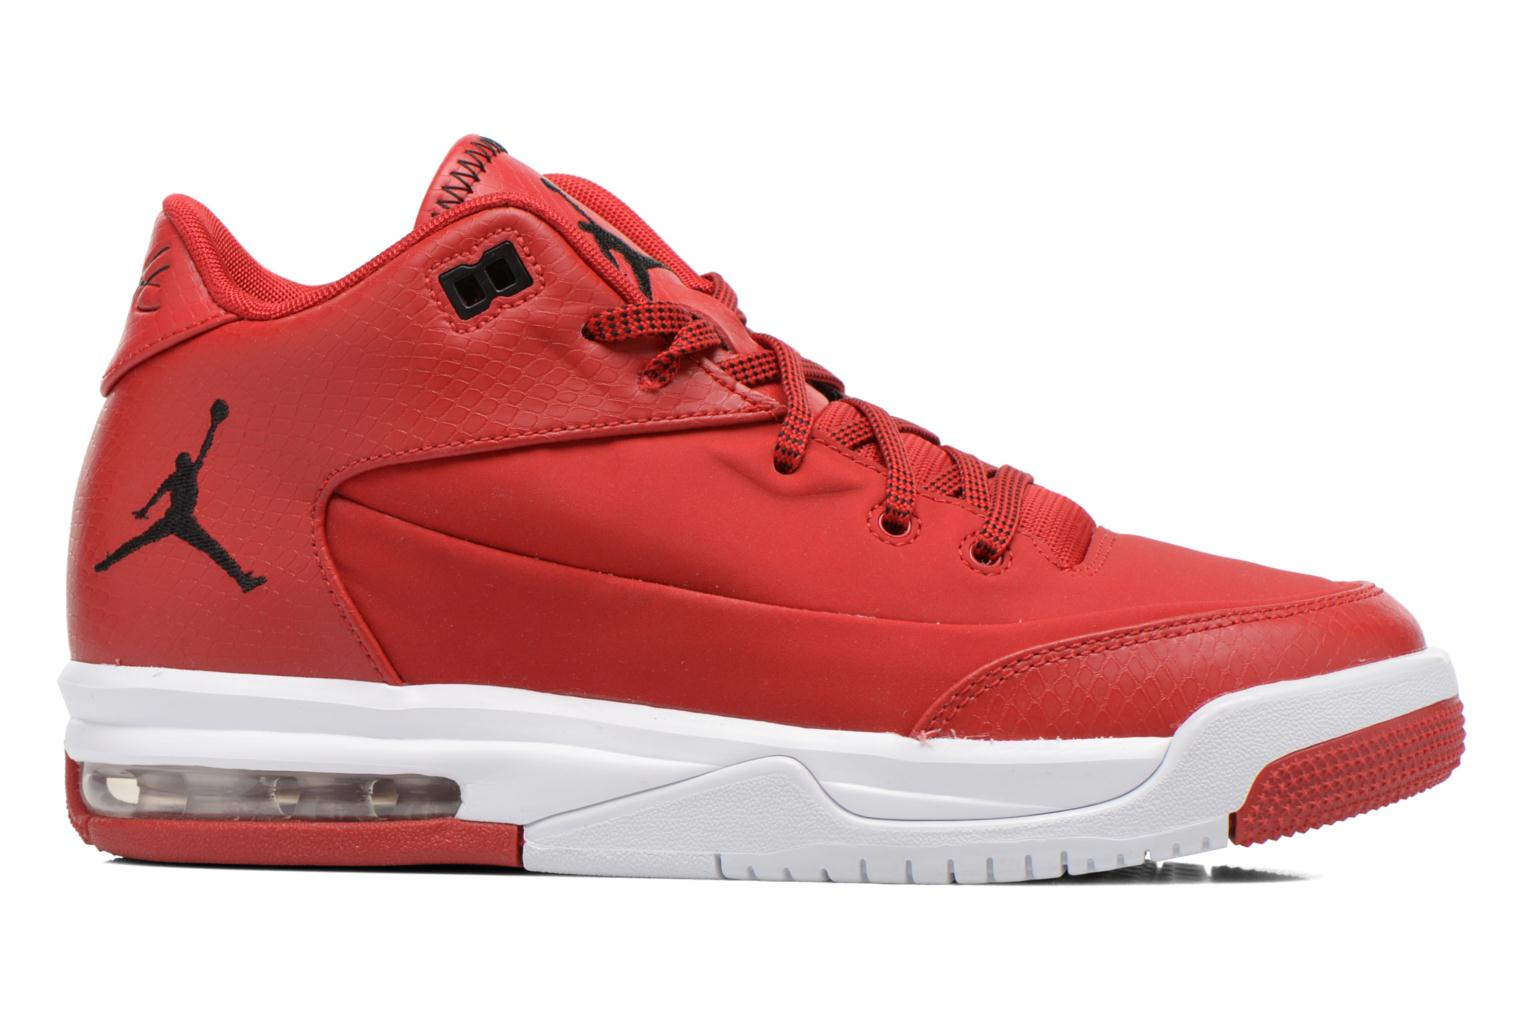 Jordan Flight Origin 3 Bg Gym Red/Black-White